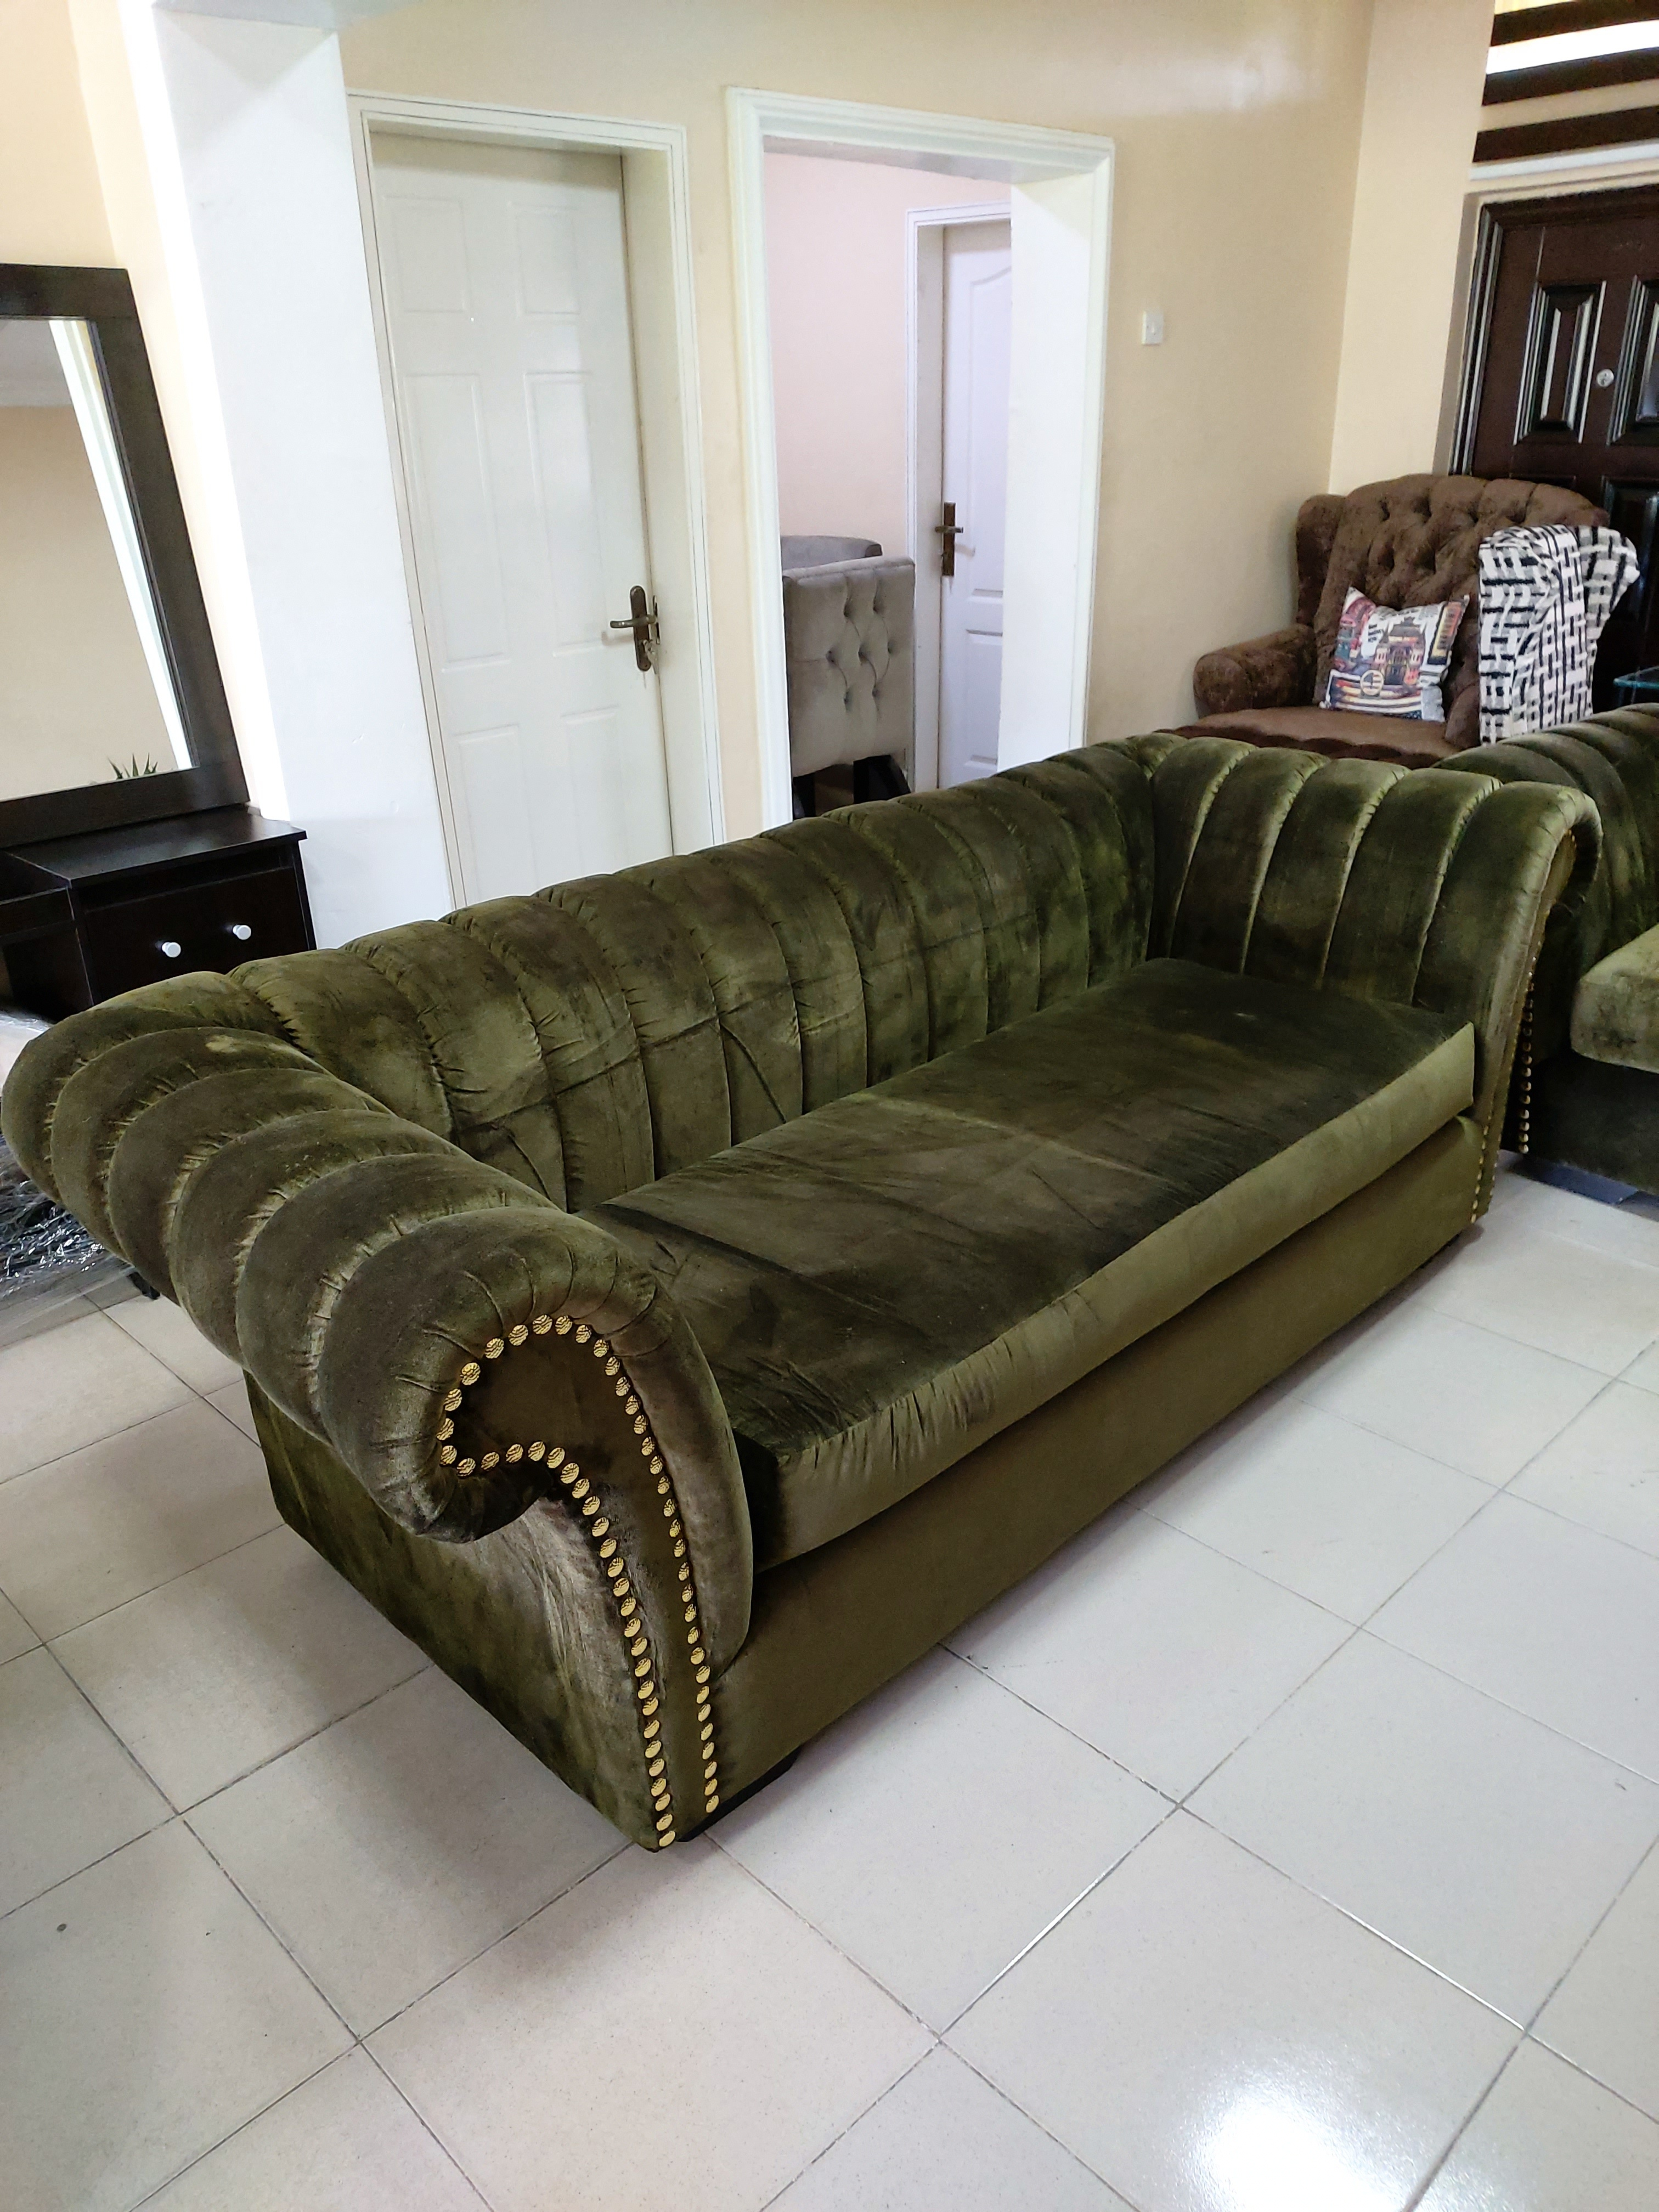 Living-room-furniture/sofa-designs-in-lagos - Shop - Furniture